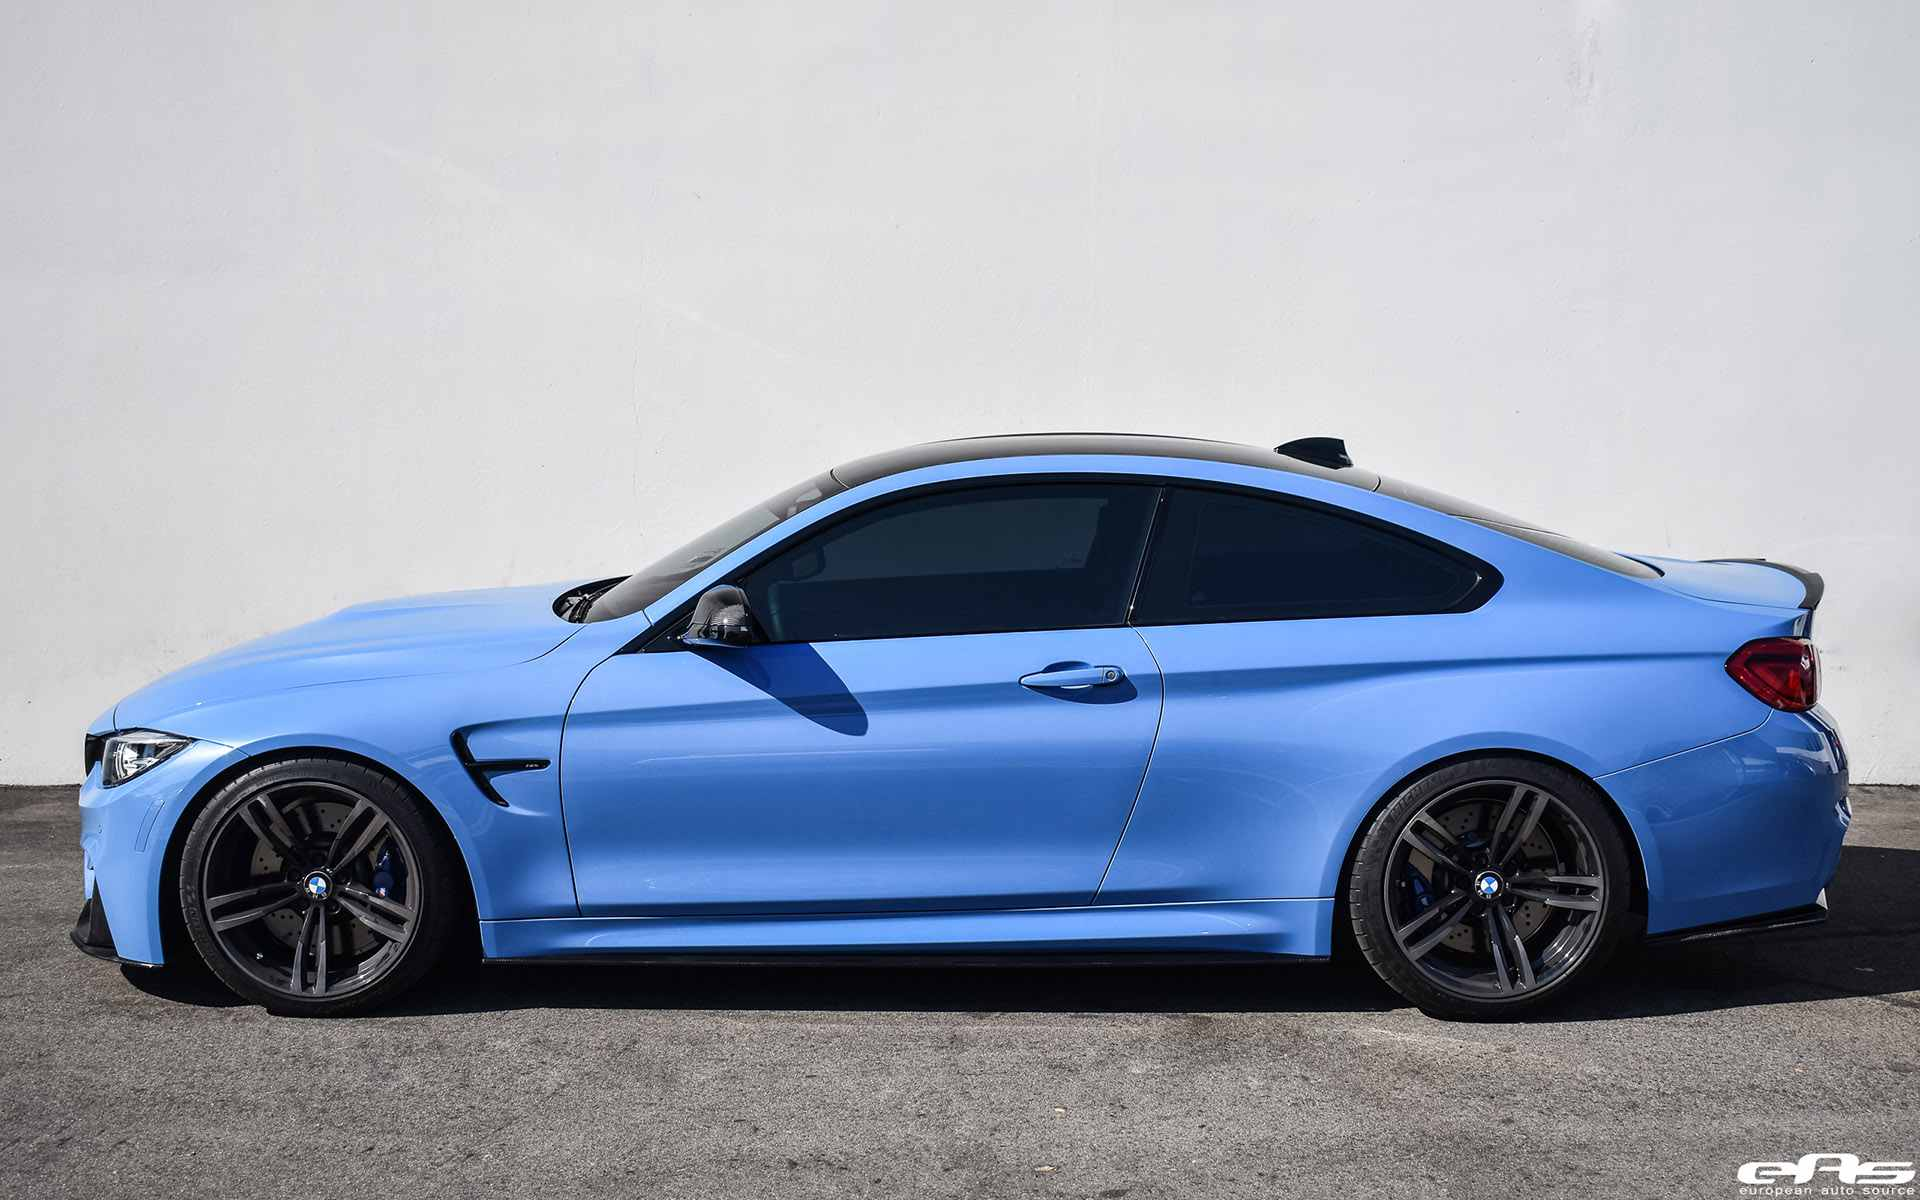 Yas Marina Blue Bmw M4 By European Auto Source Bmw Car